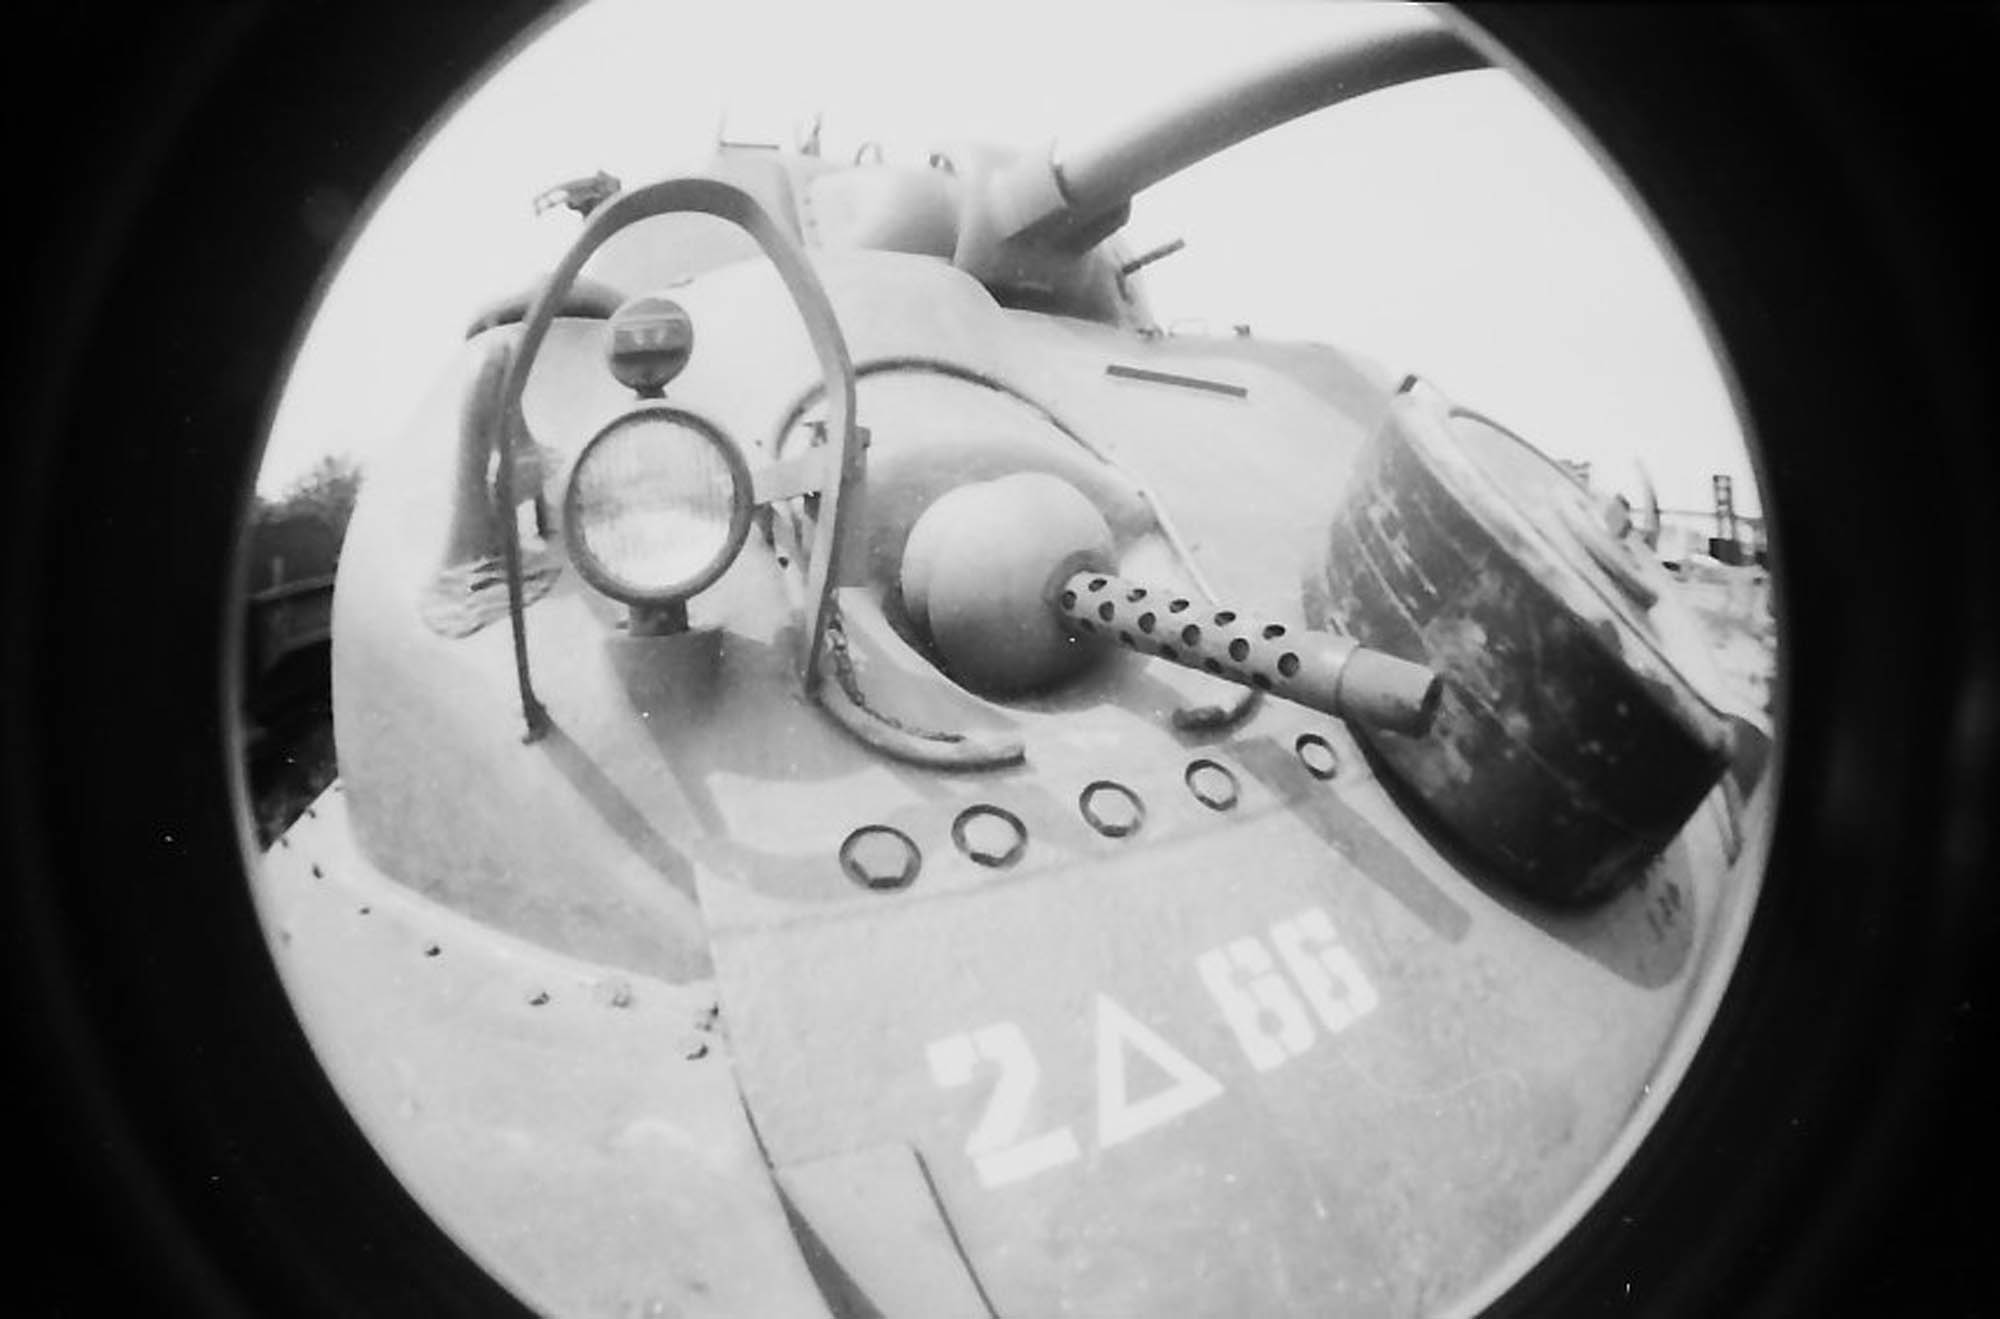 Taken with fisheye no. 2 by Lomography.